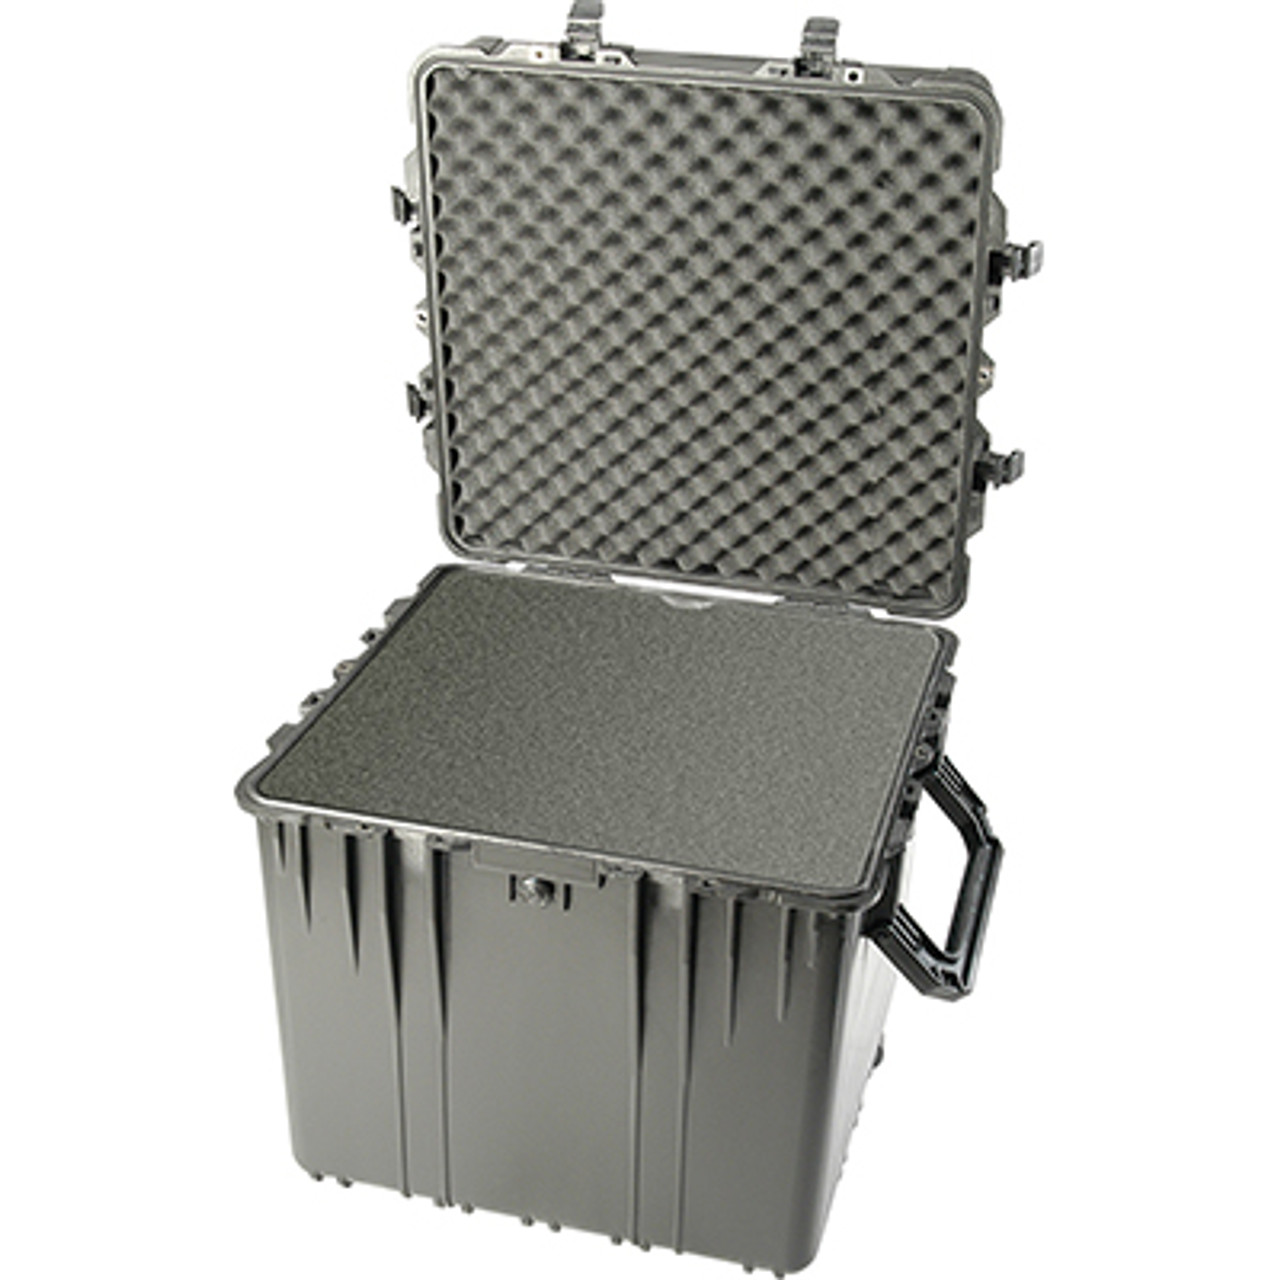 Pelican 0370 Protector  Cube Case, Watertight, Crushproof, and Dustproof, with Optional Foam Insert and Optional Lid Organizer Add-on, Available in Black, OD Green or Desert Tan, 27x27x25, 47 lbs (w-out foam, 38 lbs)